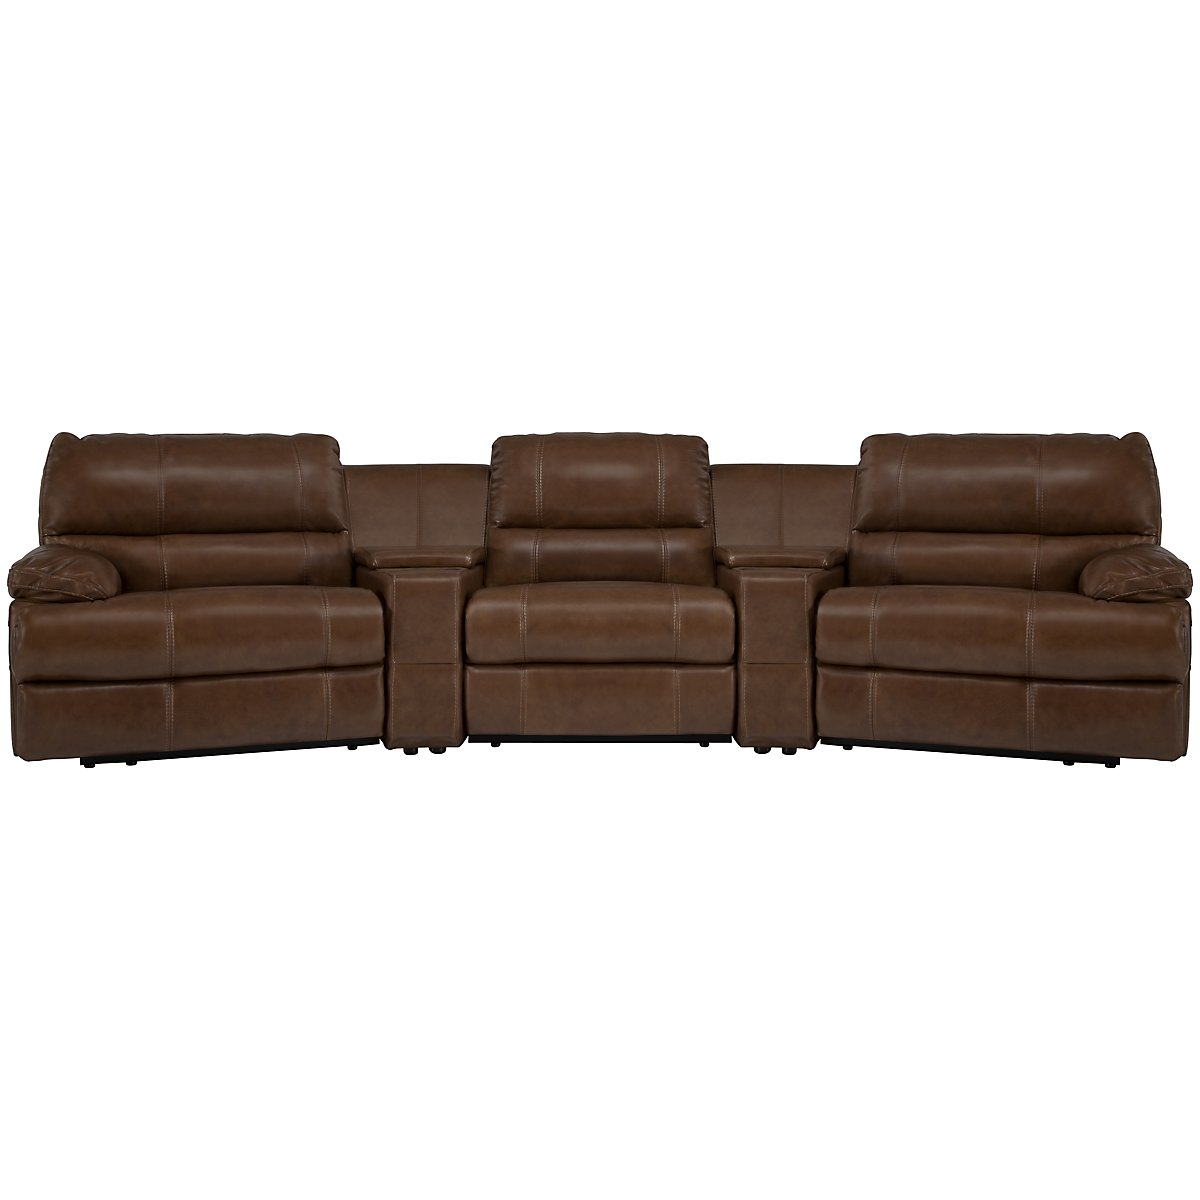 Alton2 Md Brown Leather & Vinyl Large Power Reclining Home Theater Sectional